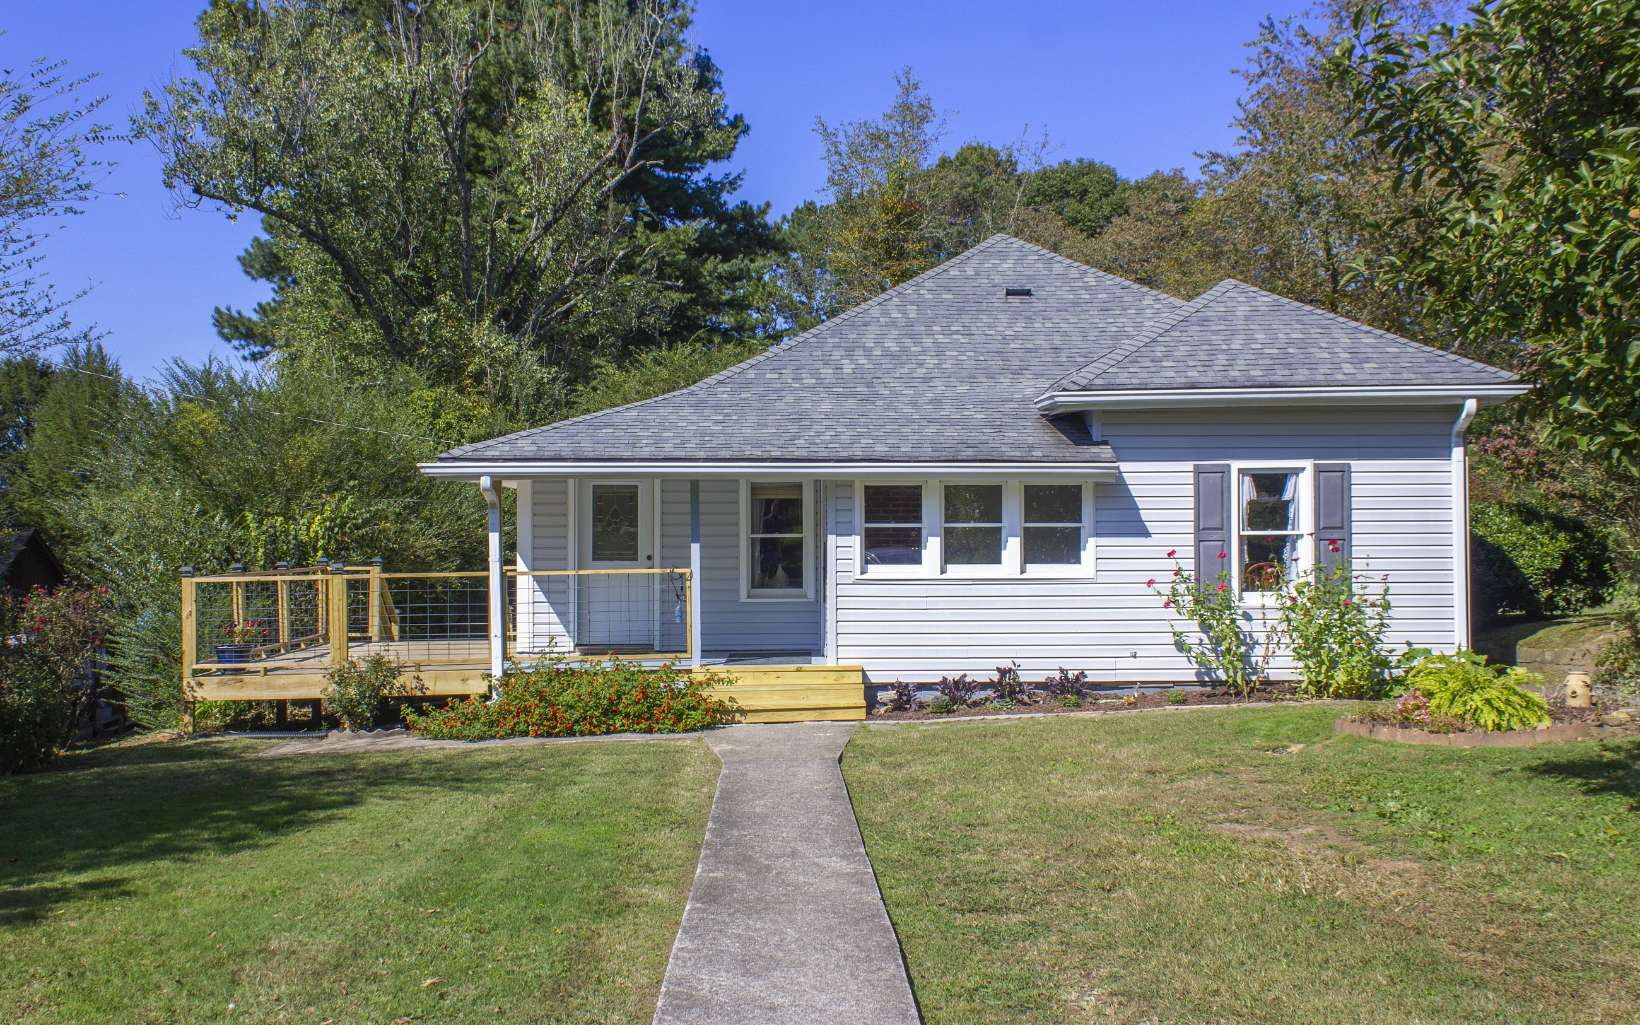 3BR-1.5BA with 1,324 sq.ft. on 0.48AC